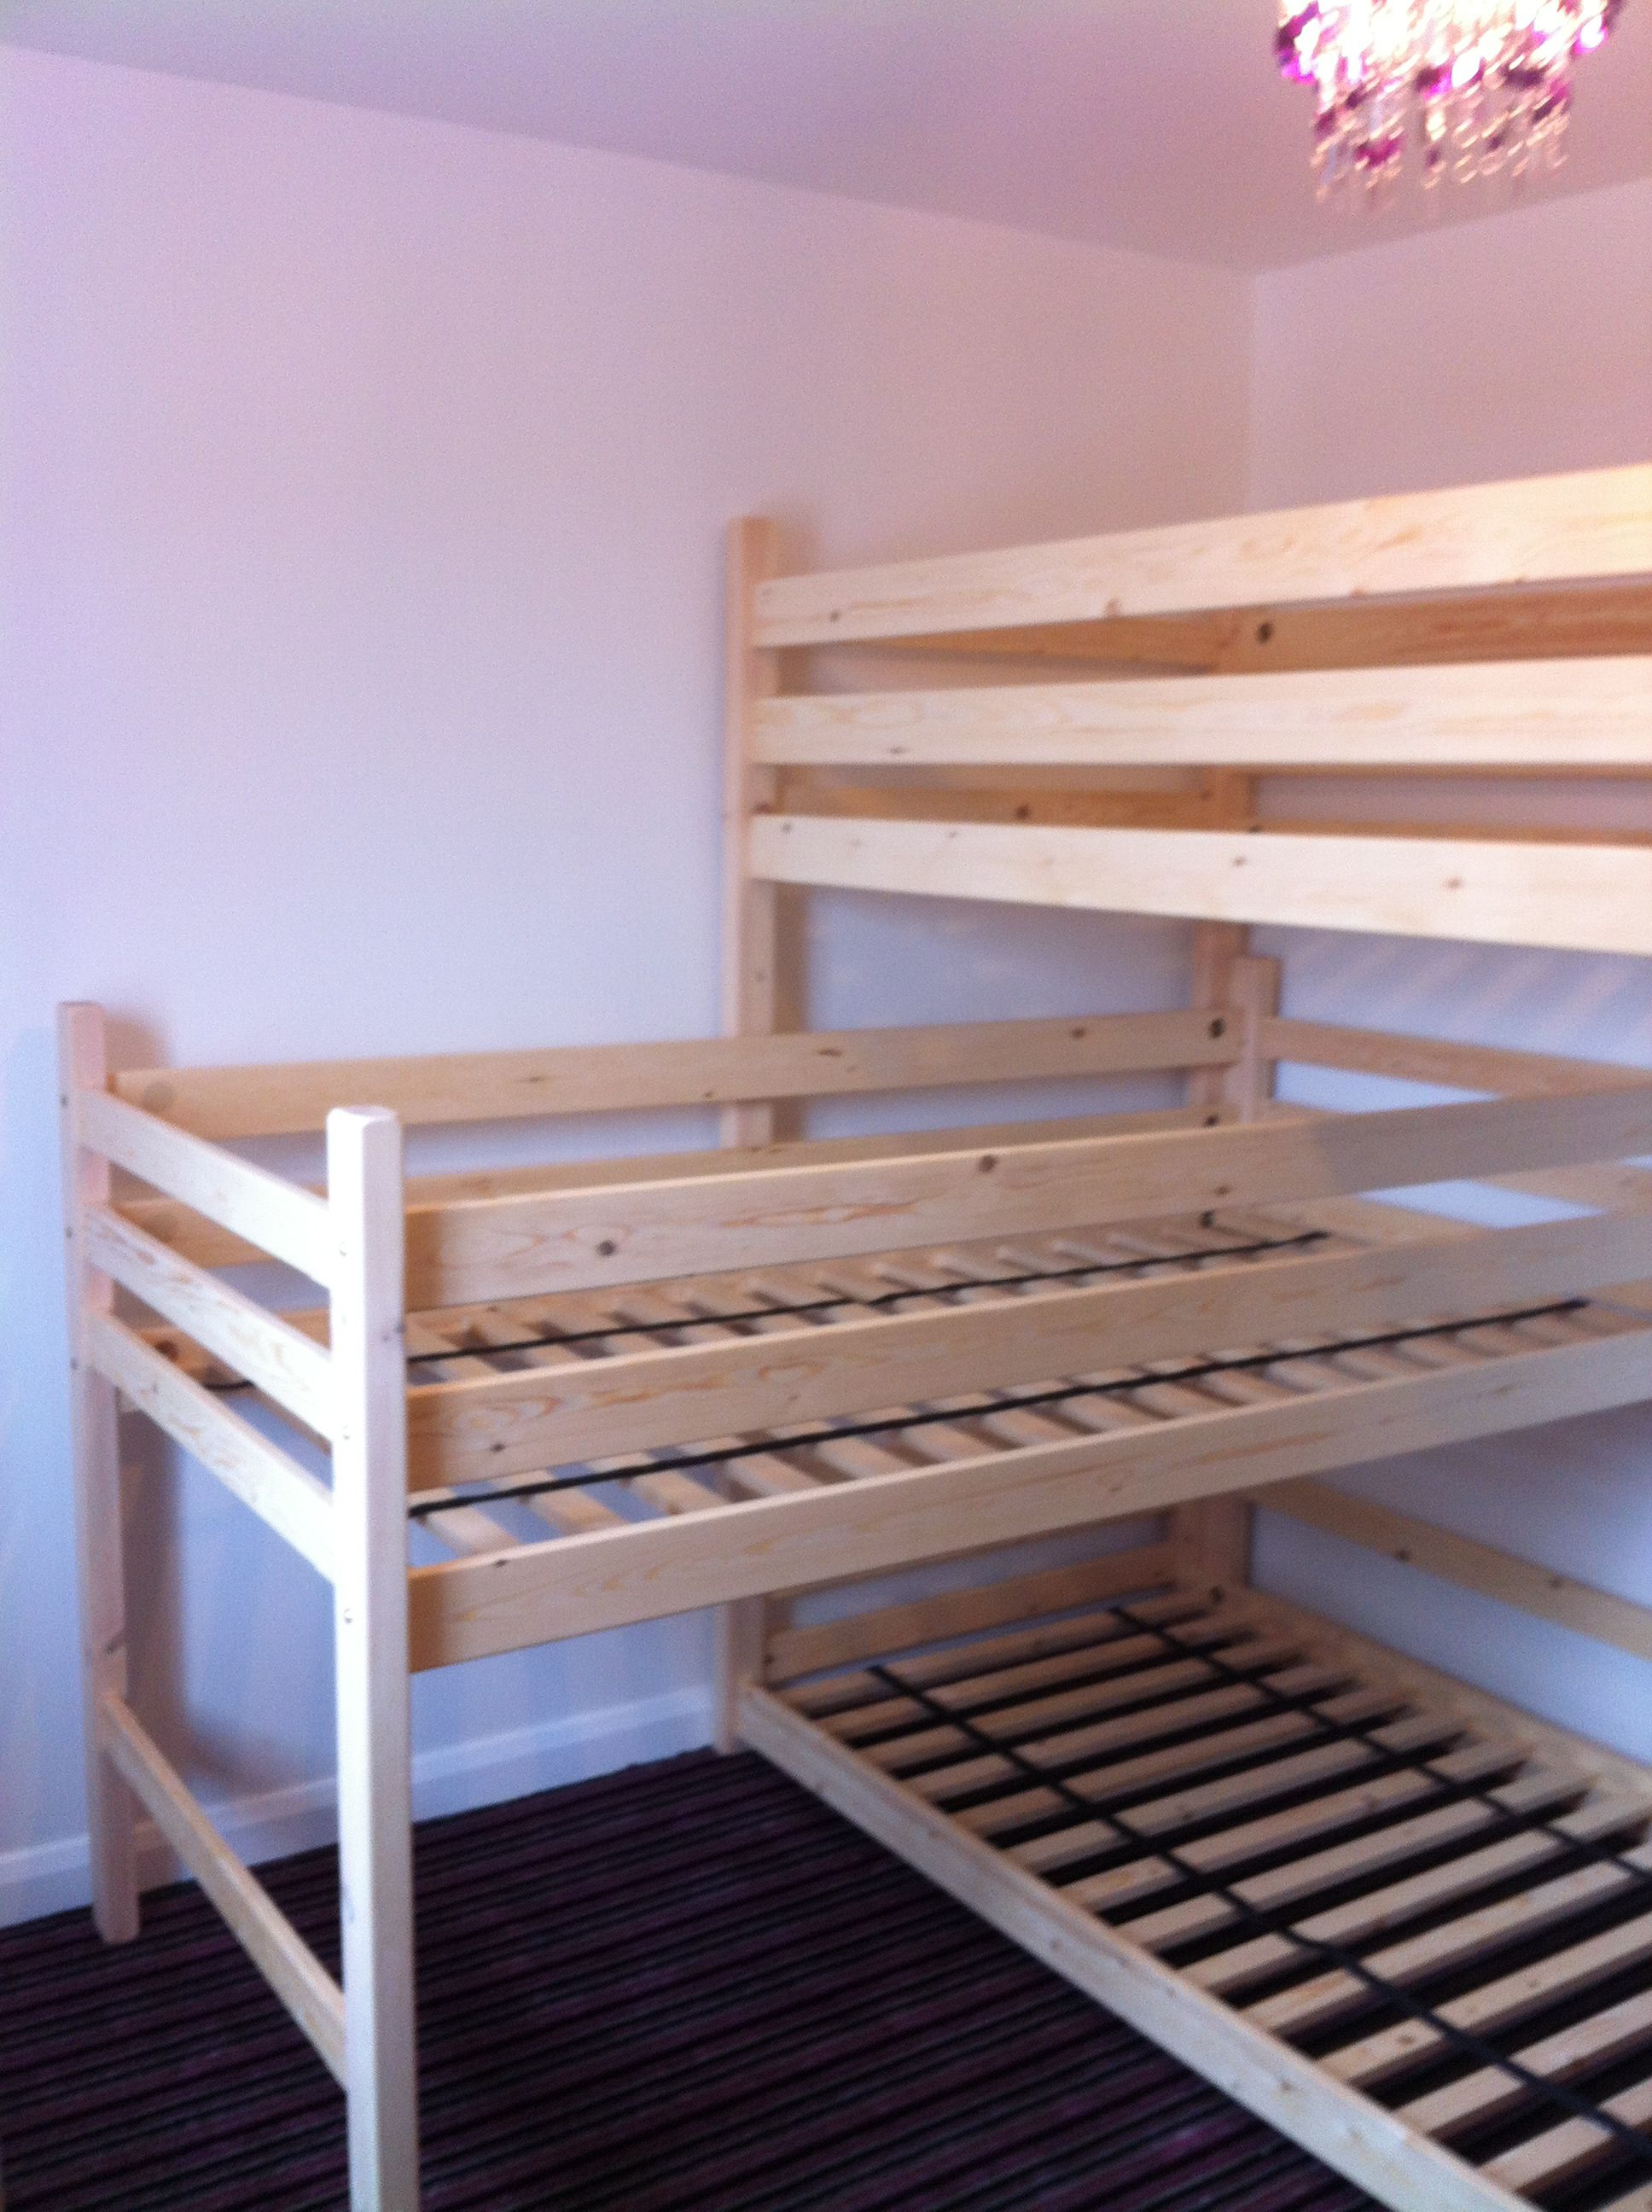 L Shaped Triple Bunk Ready For Its Mattresses 01202 511030 Bunk Beds Small Room Girls Bunk Beds Bunk Beds